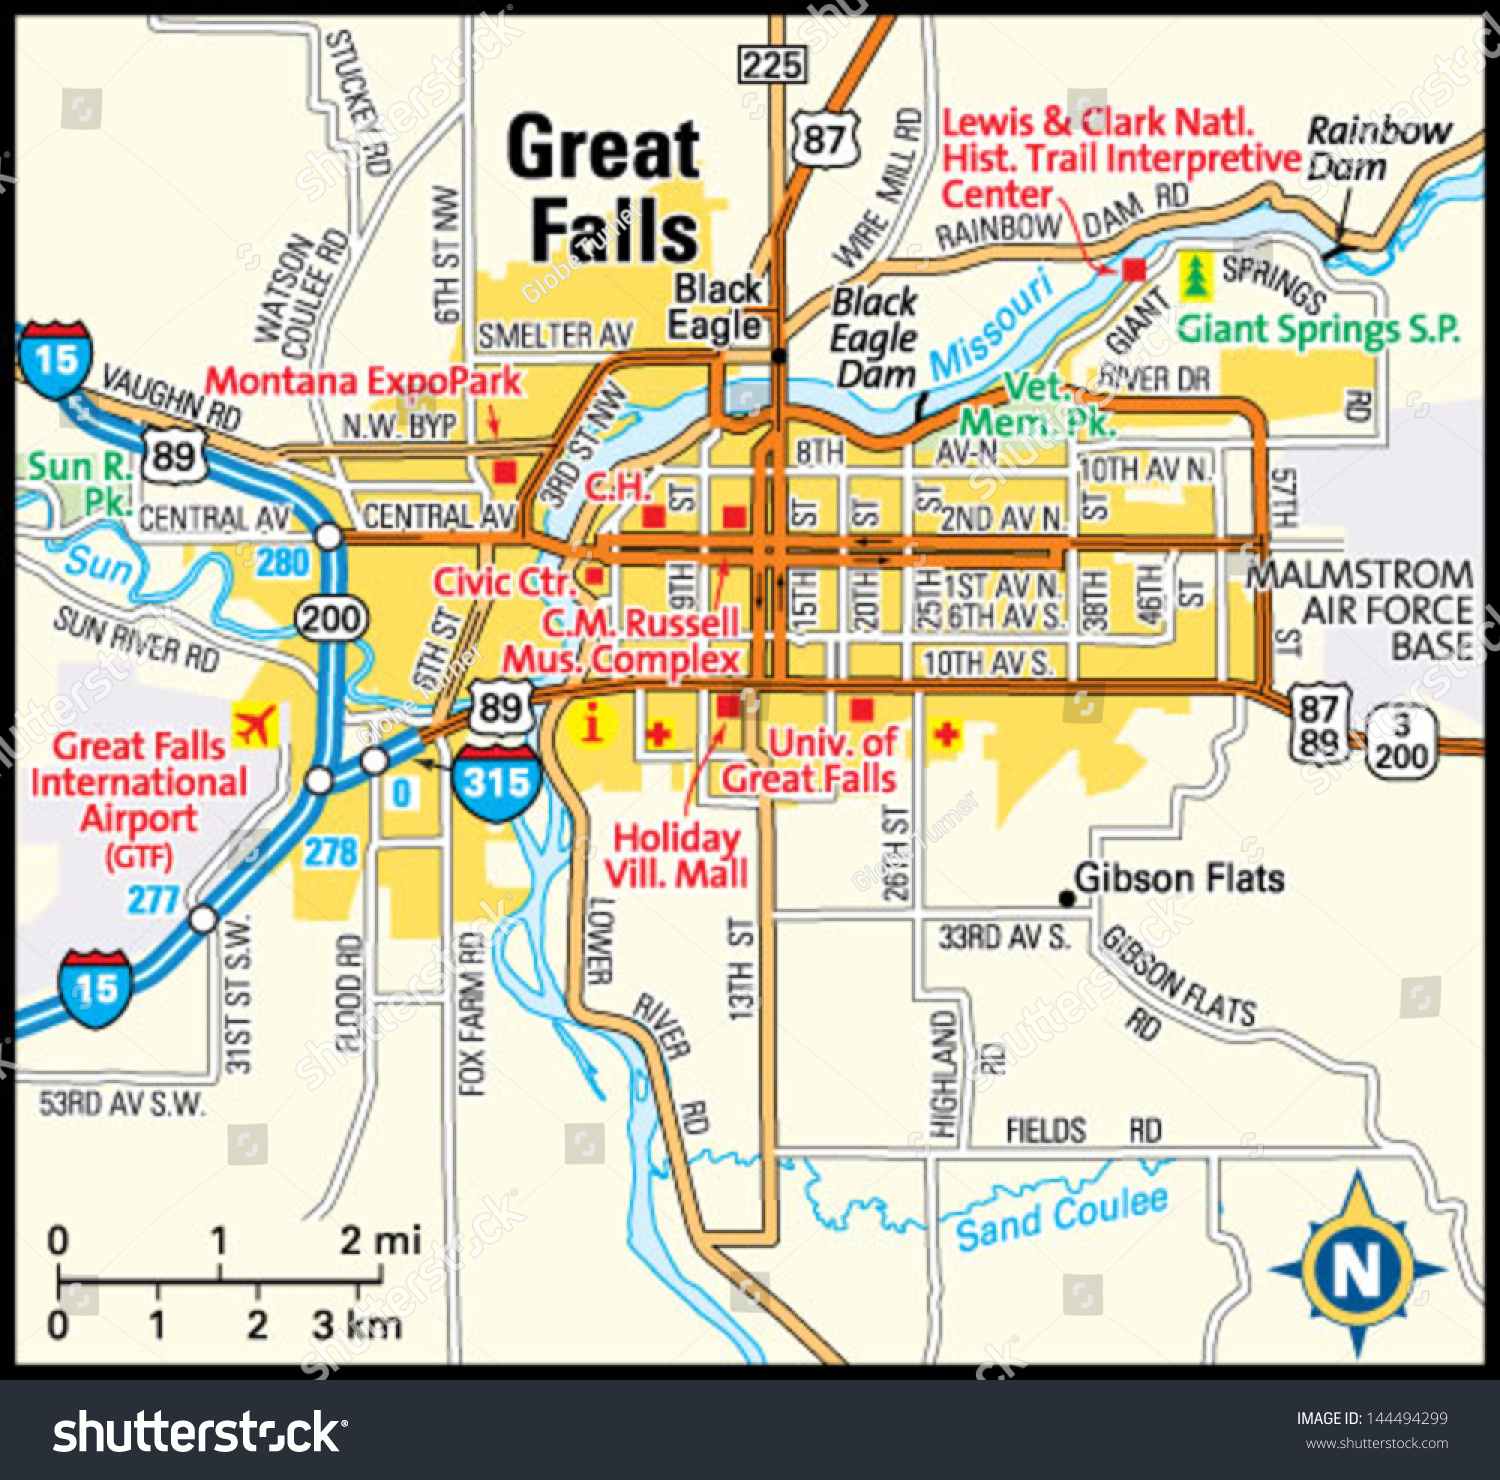 Great Falls Montana Area Map Stock Vector (Royalty Free) 144494299